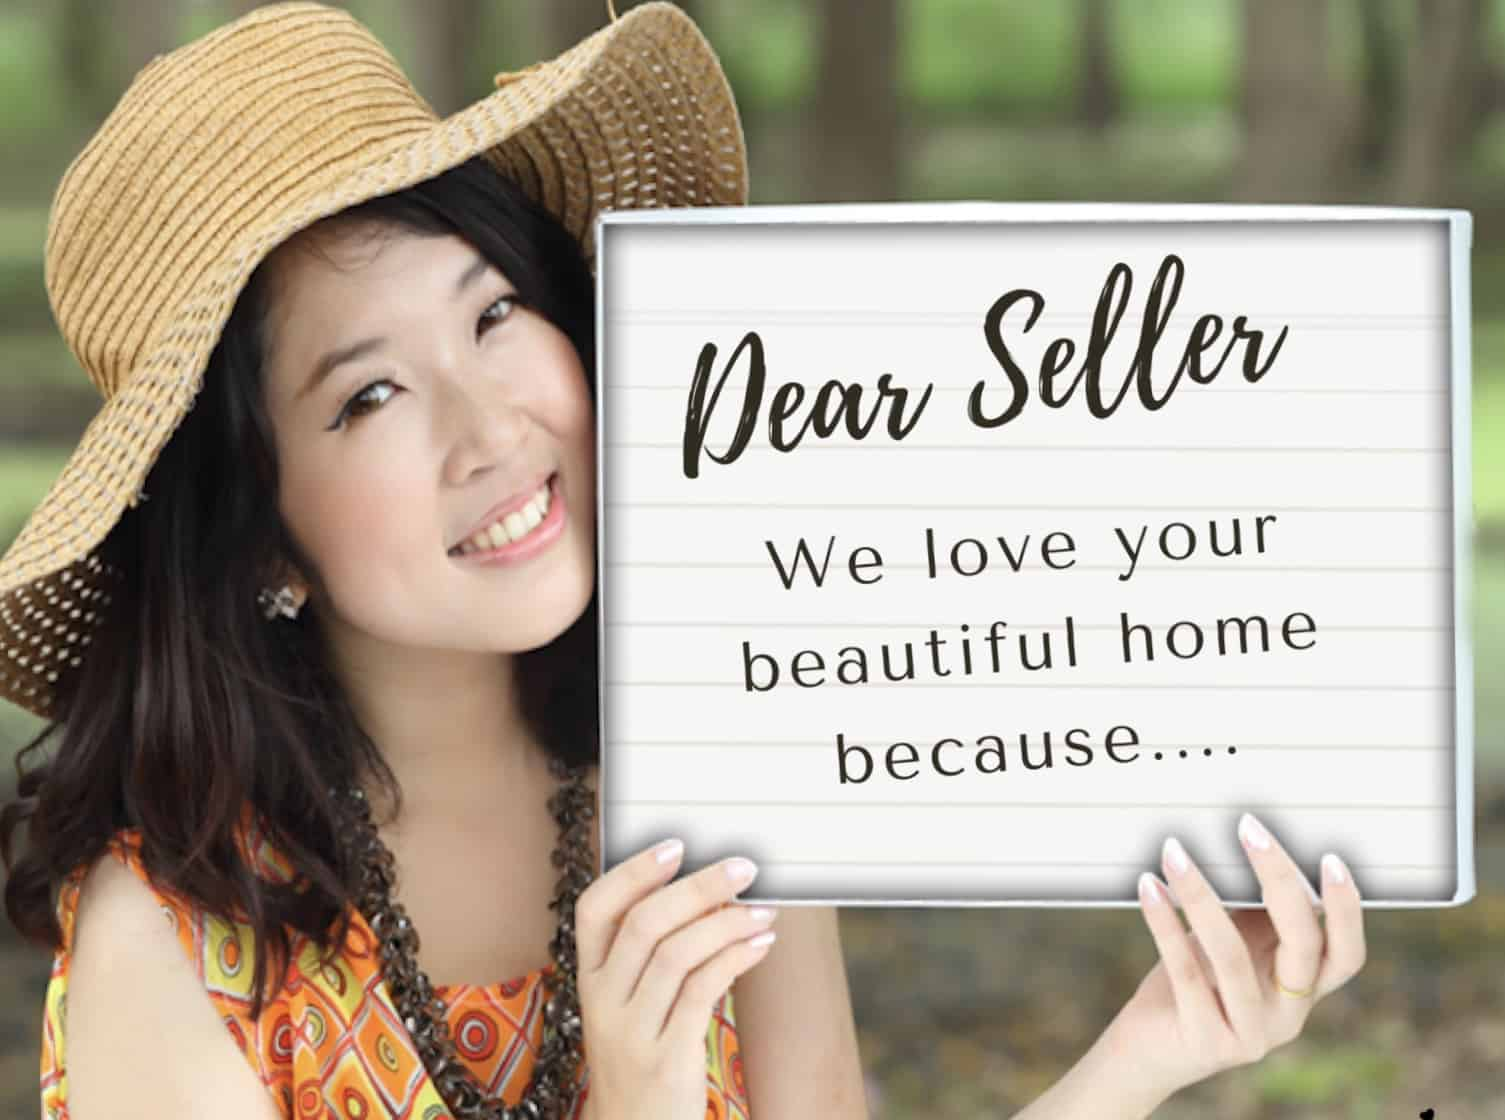 In most cases, people who want to buy a house, make an offer through a real estate agent.the agent also wants to make the sale, so he or she will do their best to bring the offer to a sale. The Worst Mistake You Can Make When Writing A Buyer S Letter The Tampa Real Estate Insider